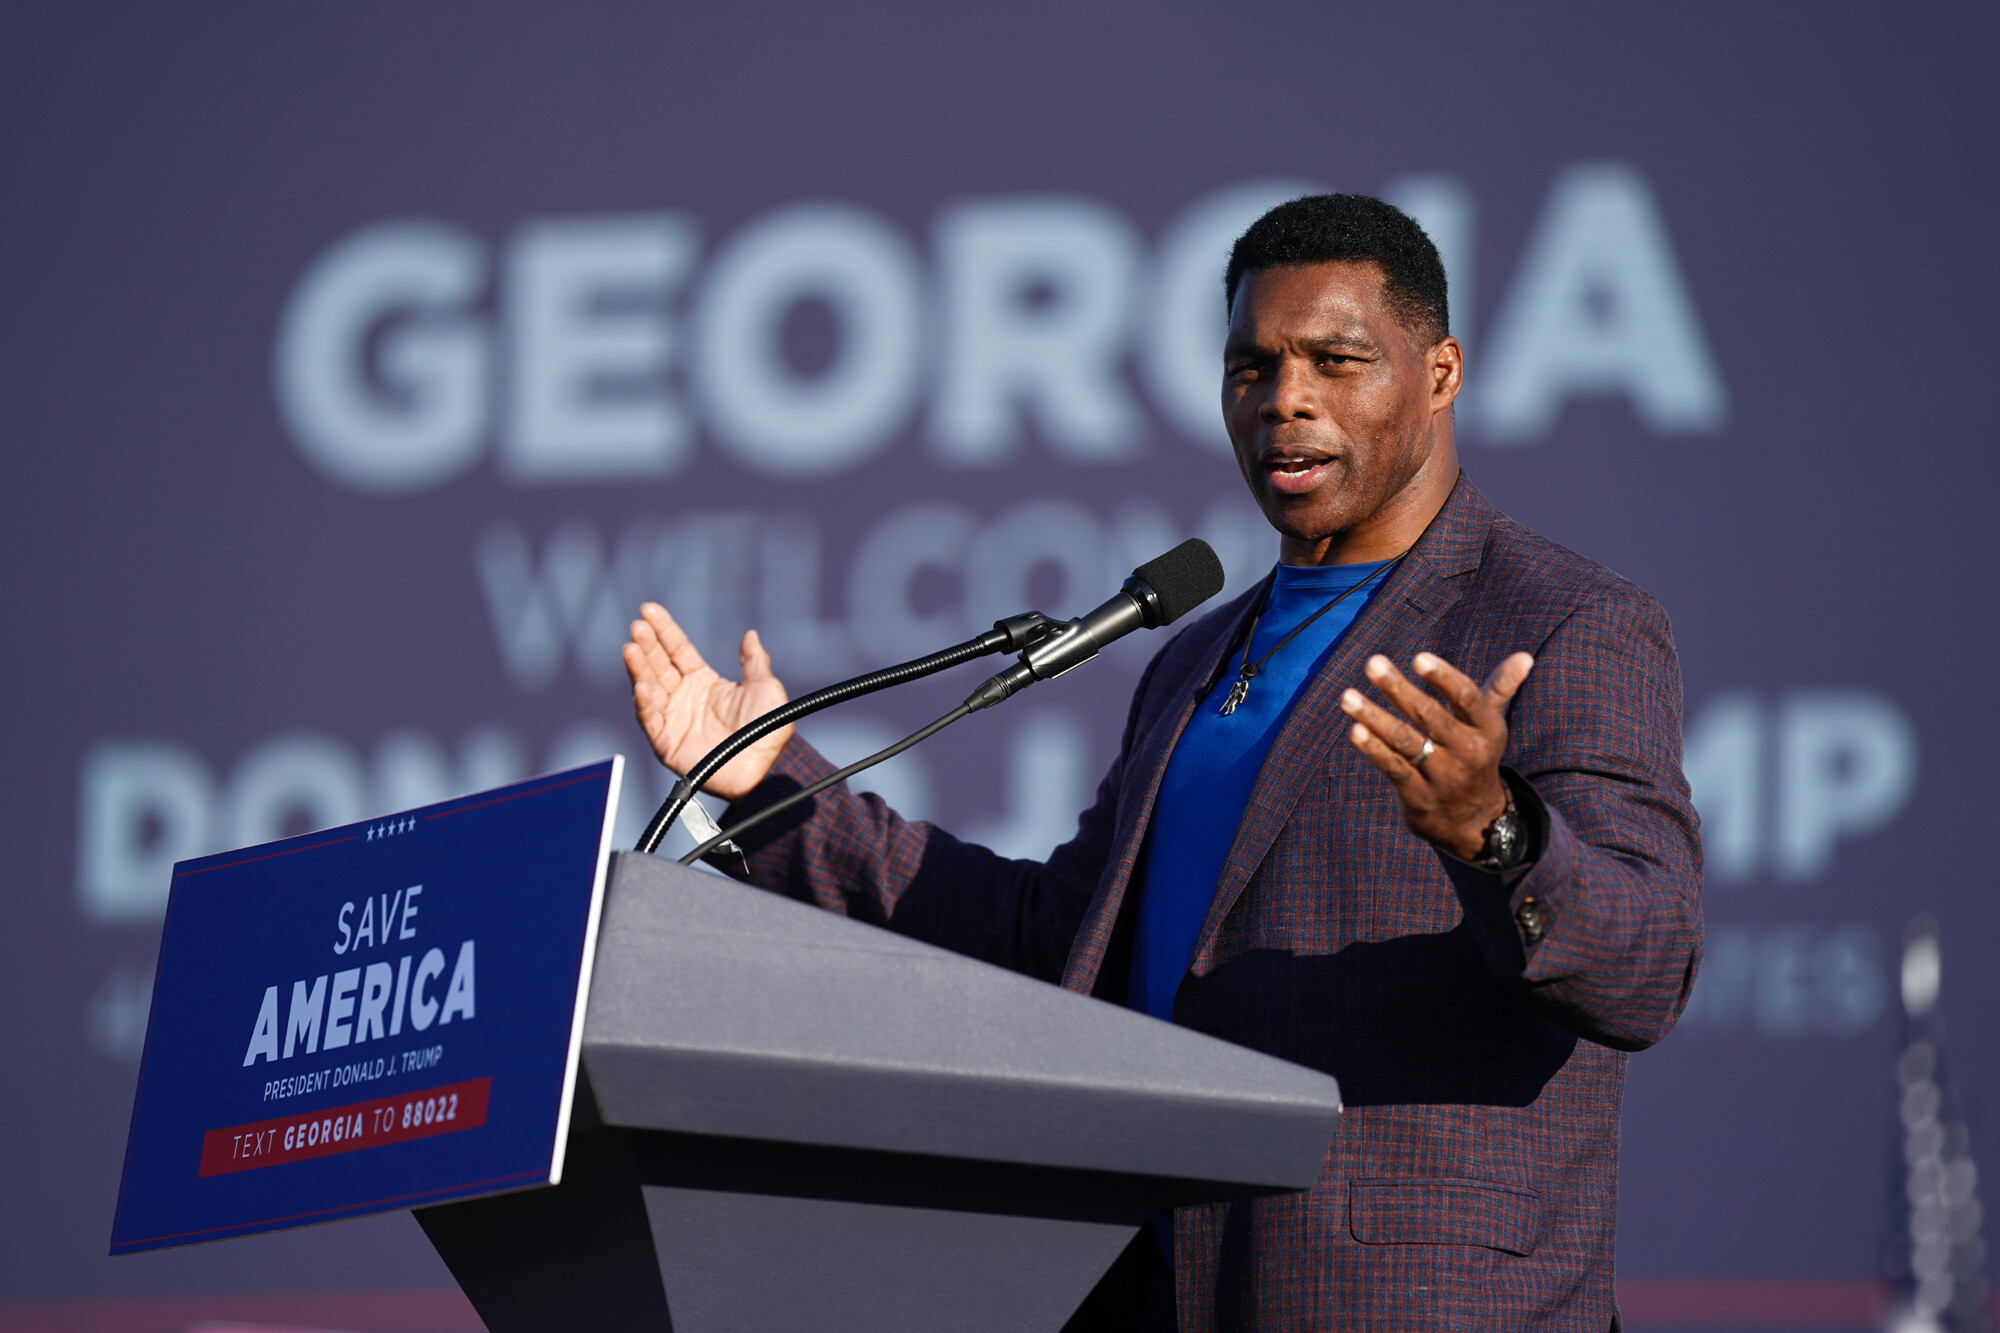 Herschel Walker cancels fundraiser with supporter who had swastika-shaped image in Twitter profile